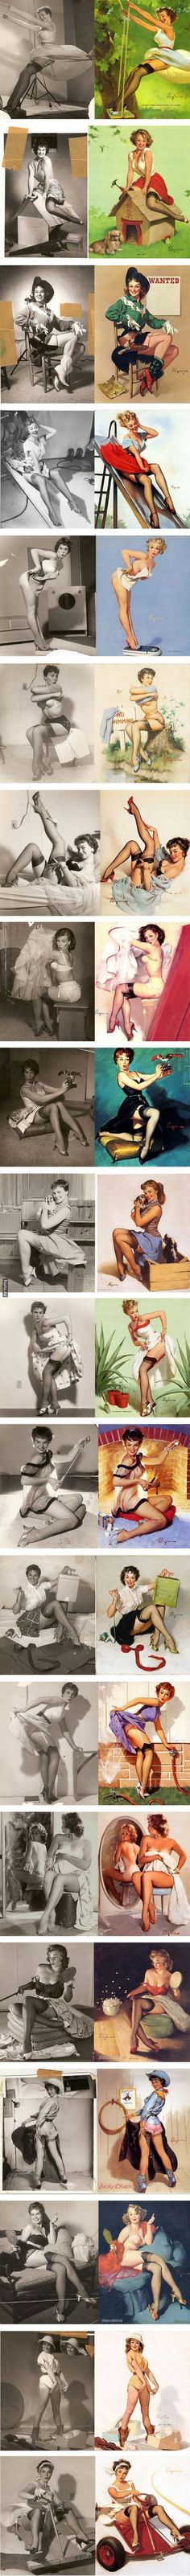 Before Photoshop there was pinup art. VISIT FOR MORE Before Photoshop there was pinup art. The post Before Photoshop there was pinup art. appeared first on Fotografie. Pin Ups Vintage, Vintage Art, Vintage Drawing, Dress Vintage, Retro Pin Up, Gil Elvgren, Pinup Art, Pin Up Girls, Dibujos Pin Up